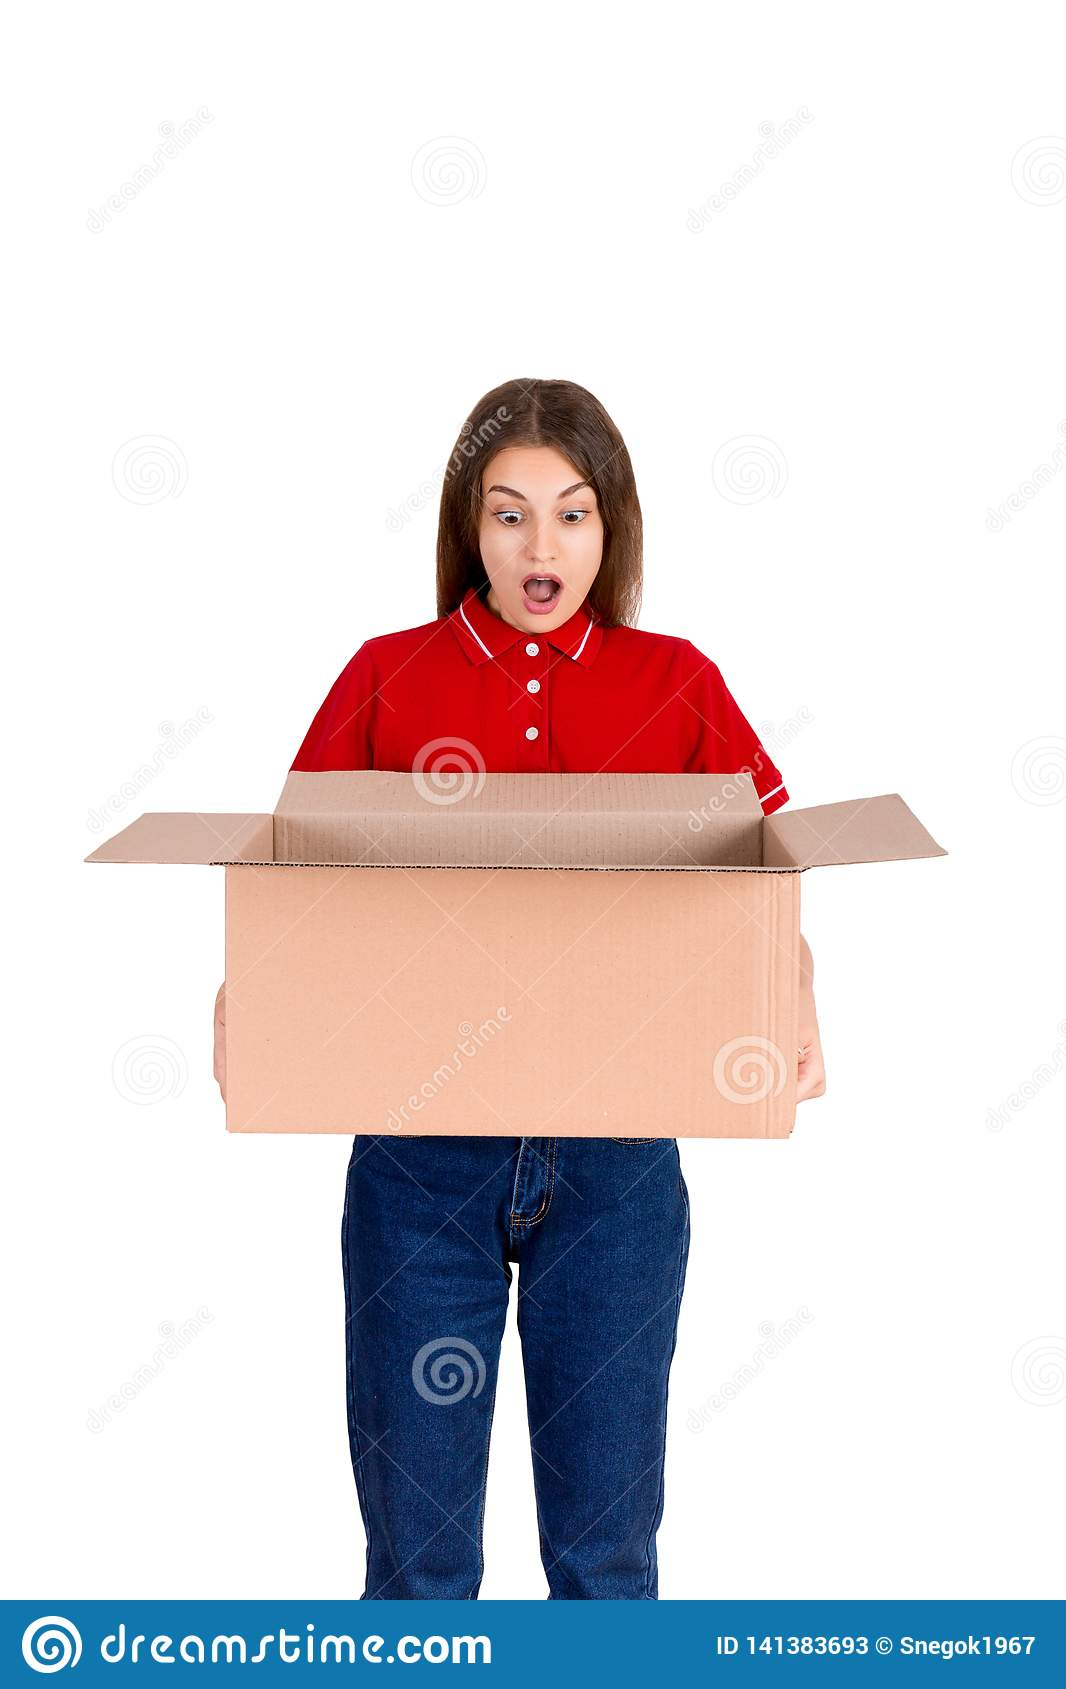 Shocked young woman is looking at missed parcel from the box isolated on white background